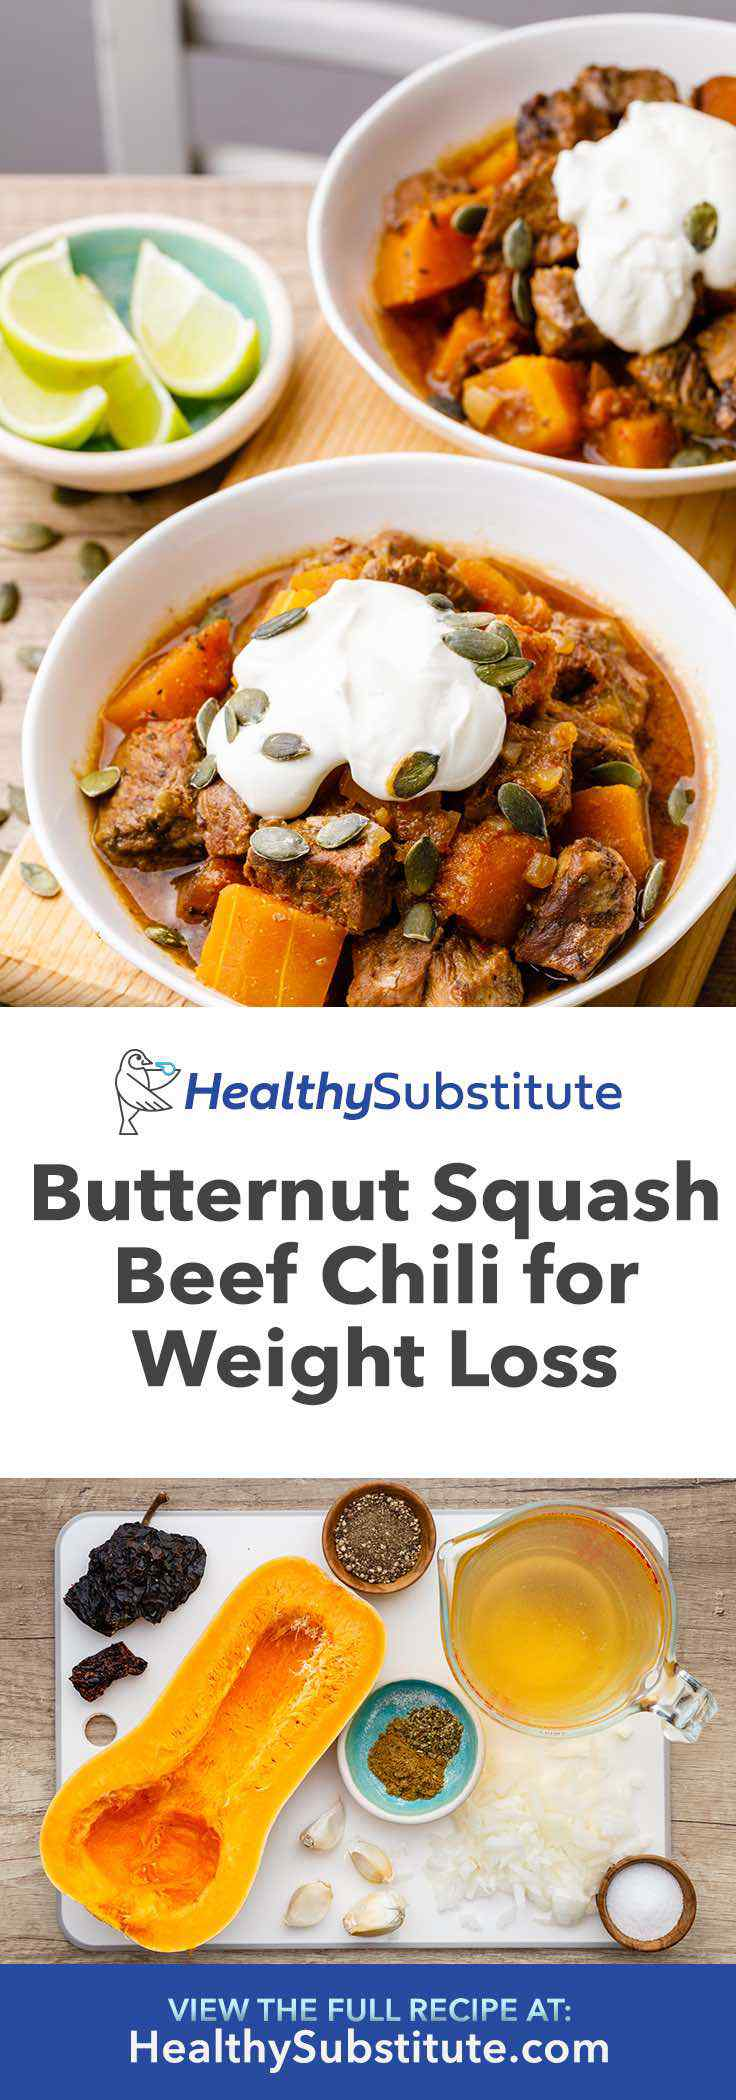 This butternut squash beef chili is incredibly delicious, satisfying and can help with weight loss.